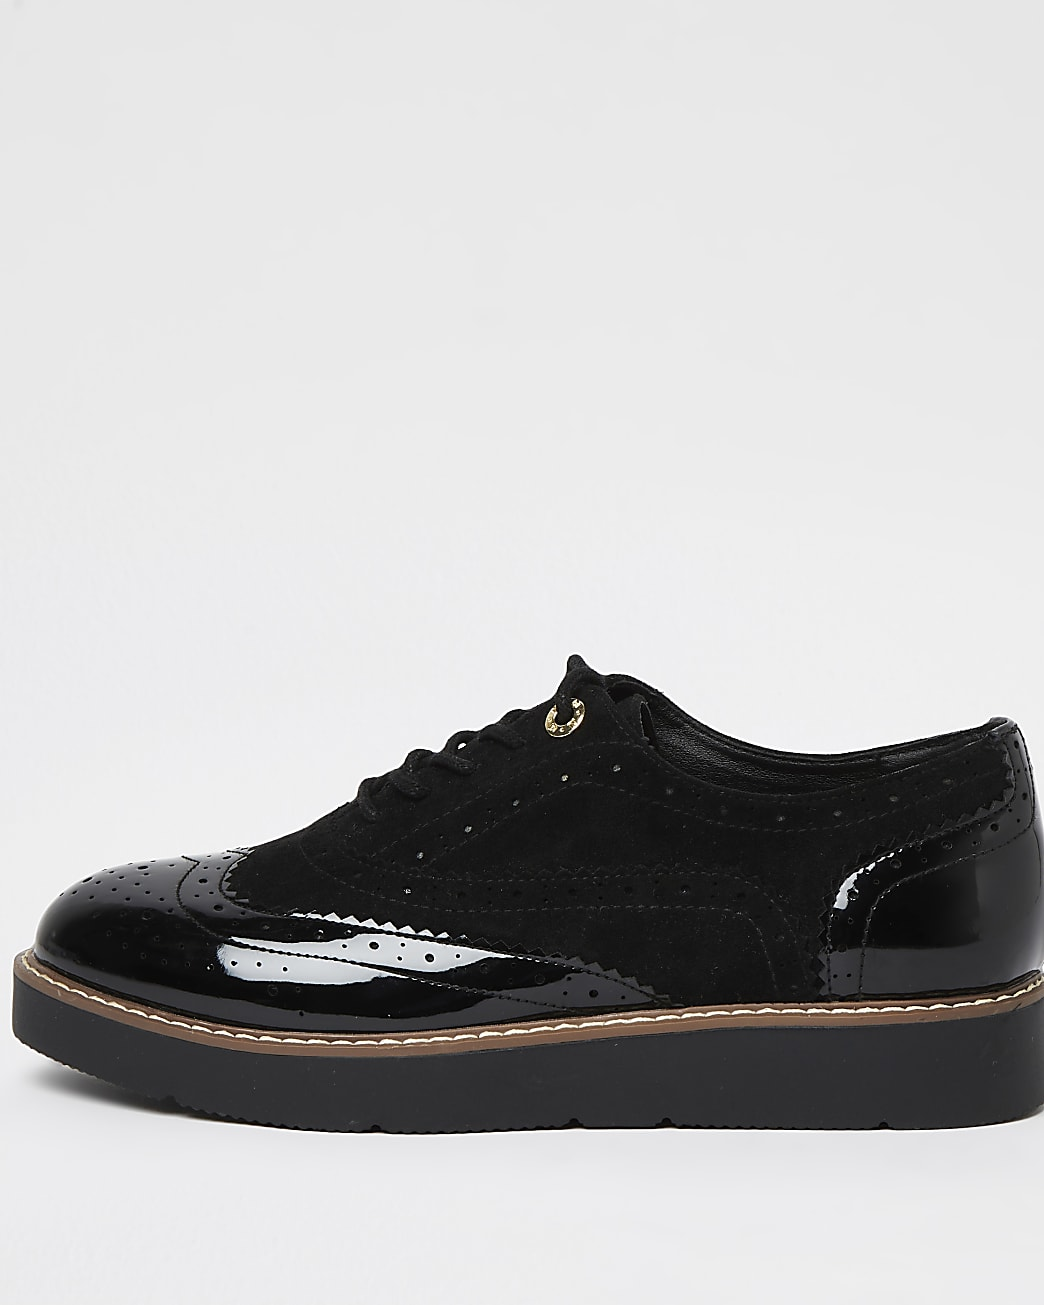 Black wide fit lace up brogues